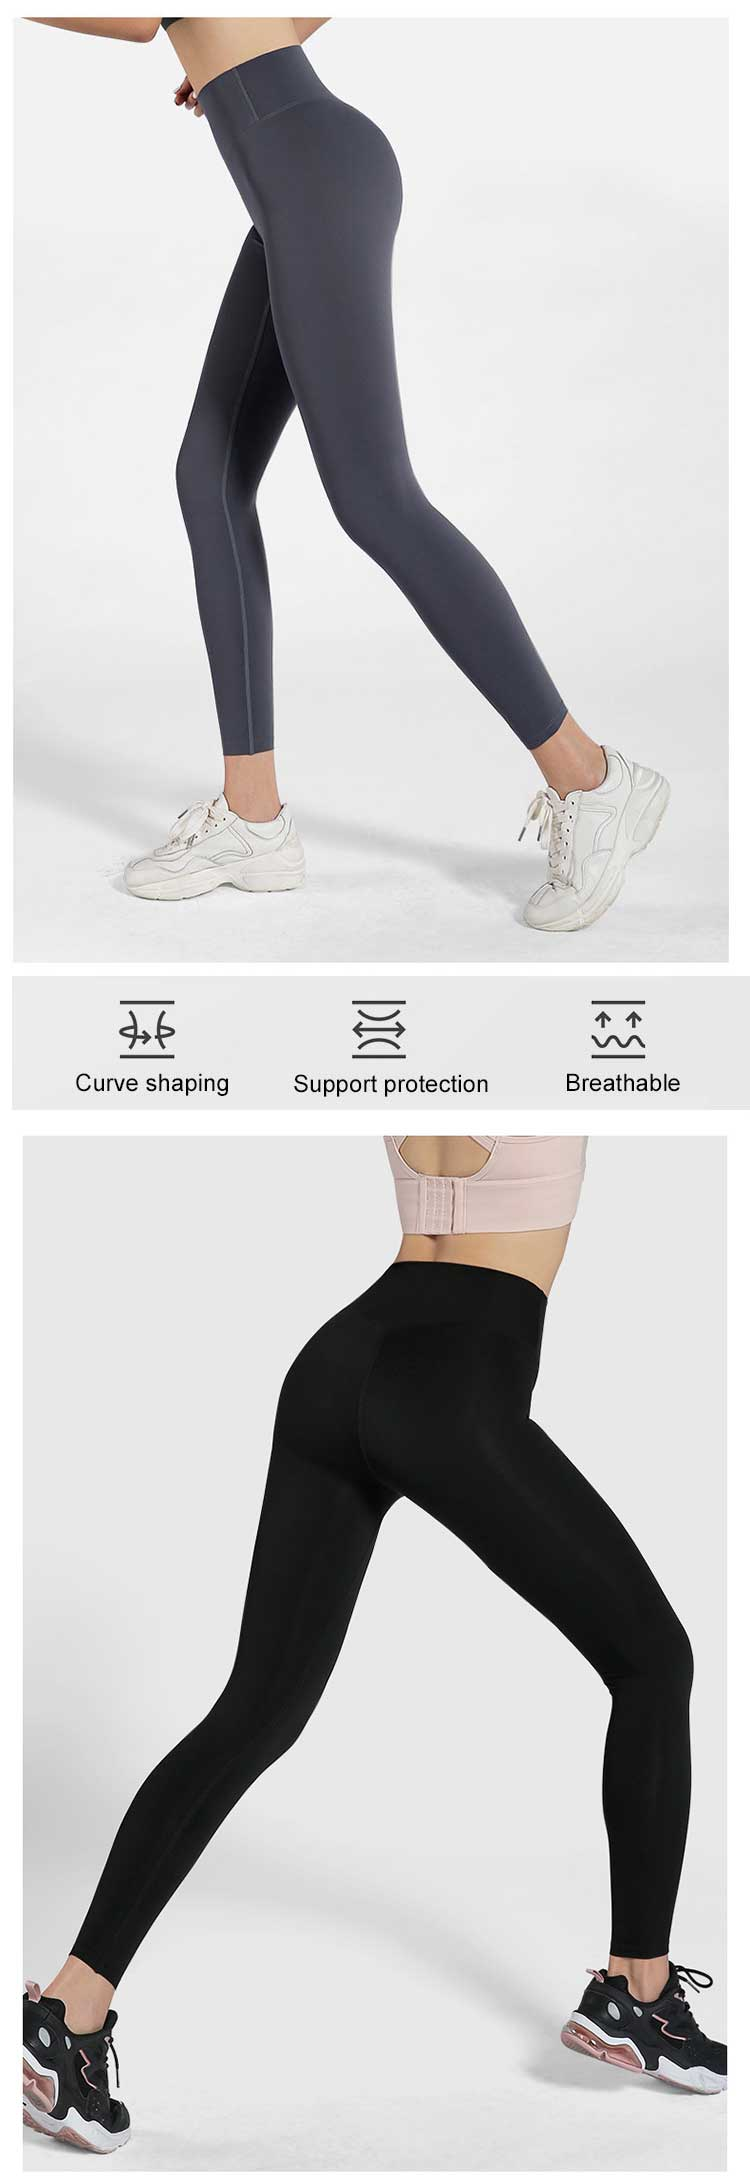 A seamless workout leggings made with superb seamless workmanship